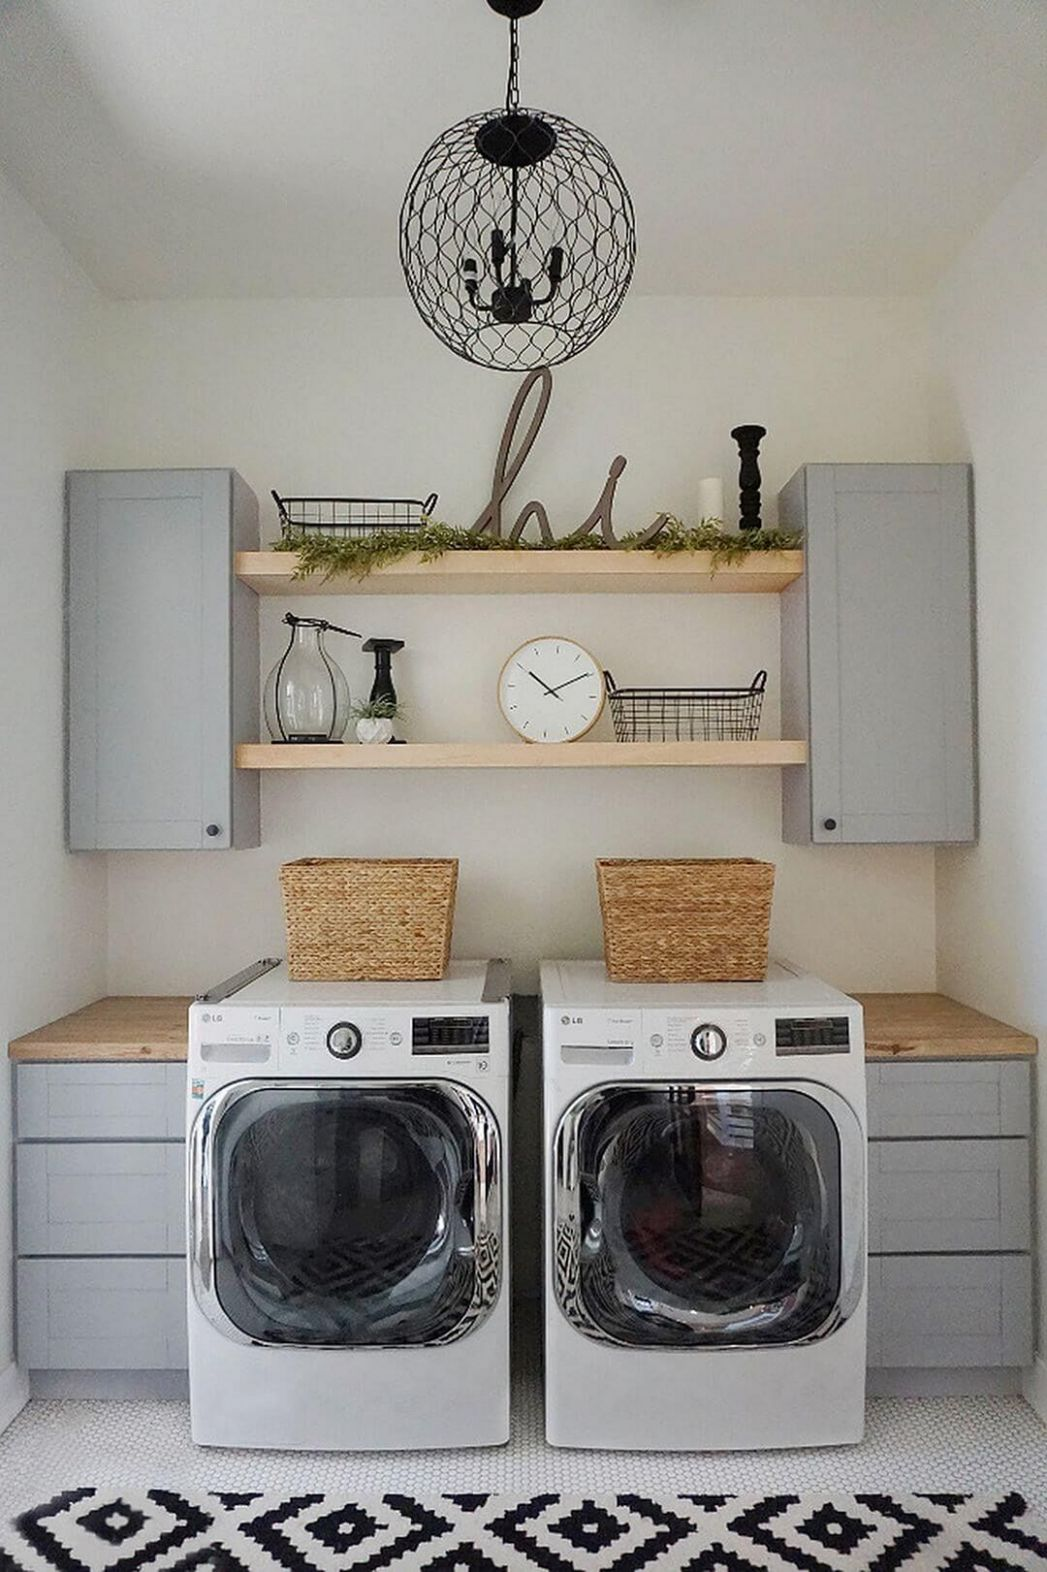 11 Most Creative Laundry Room Design And Decor Ideas | Laundry ...